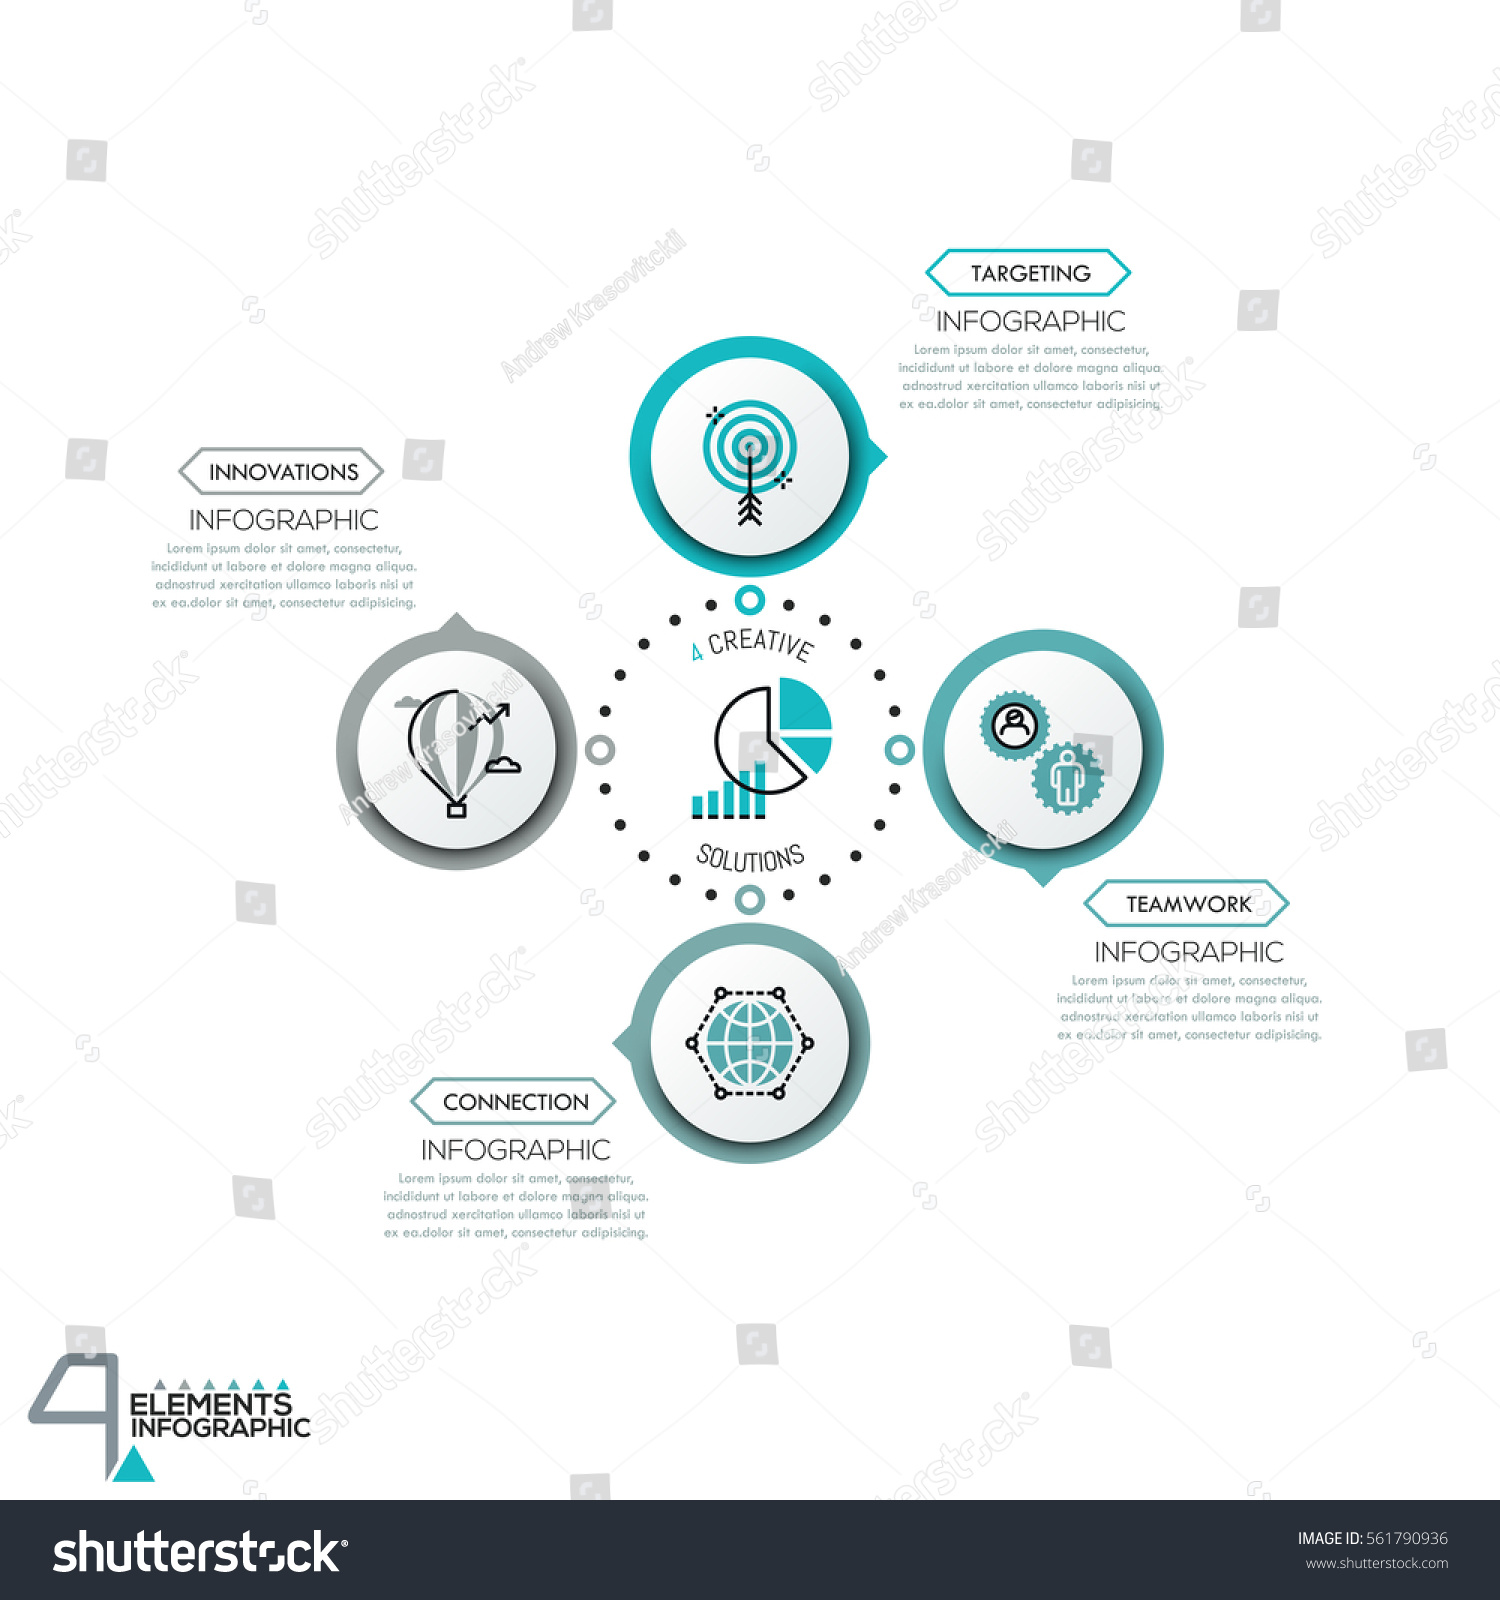 Circular diagram 4 round elements connected stock vector 561790936 circular diagram with 4 round elements connected by dotted line and text boxes modern infographic geenschuldenfo Gallery